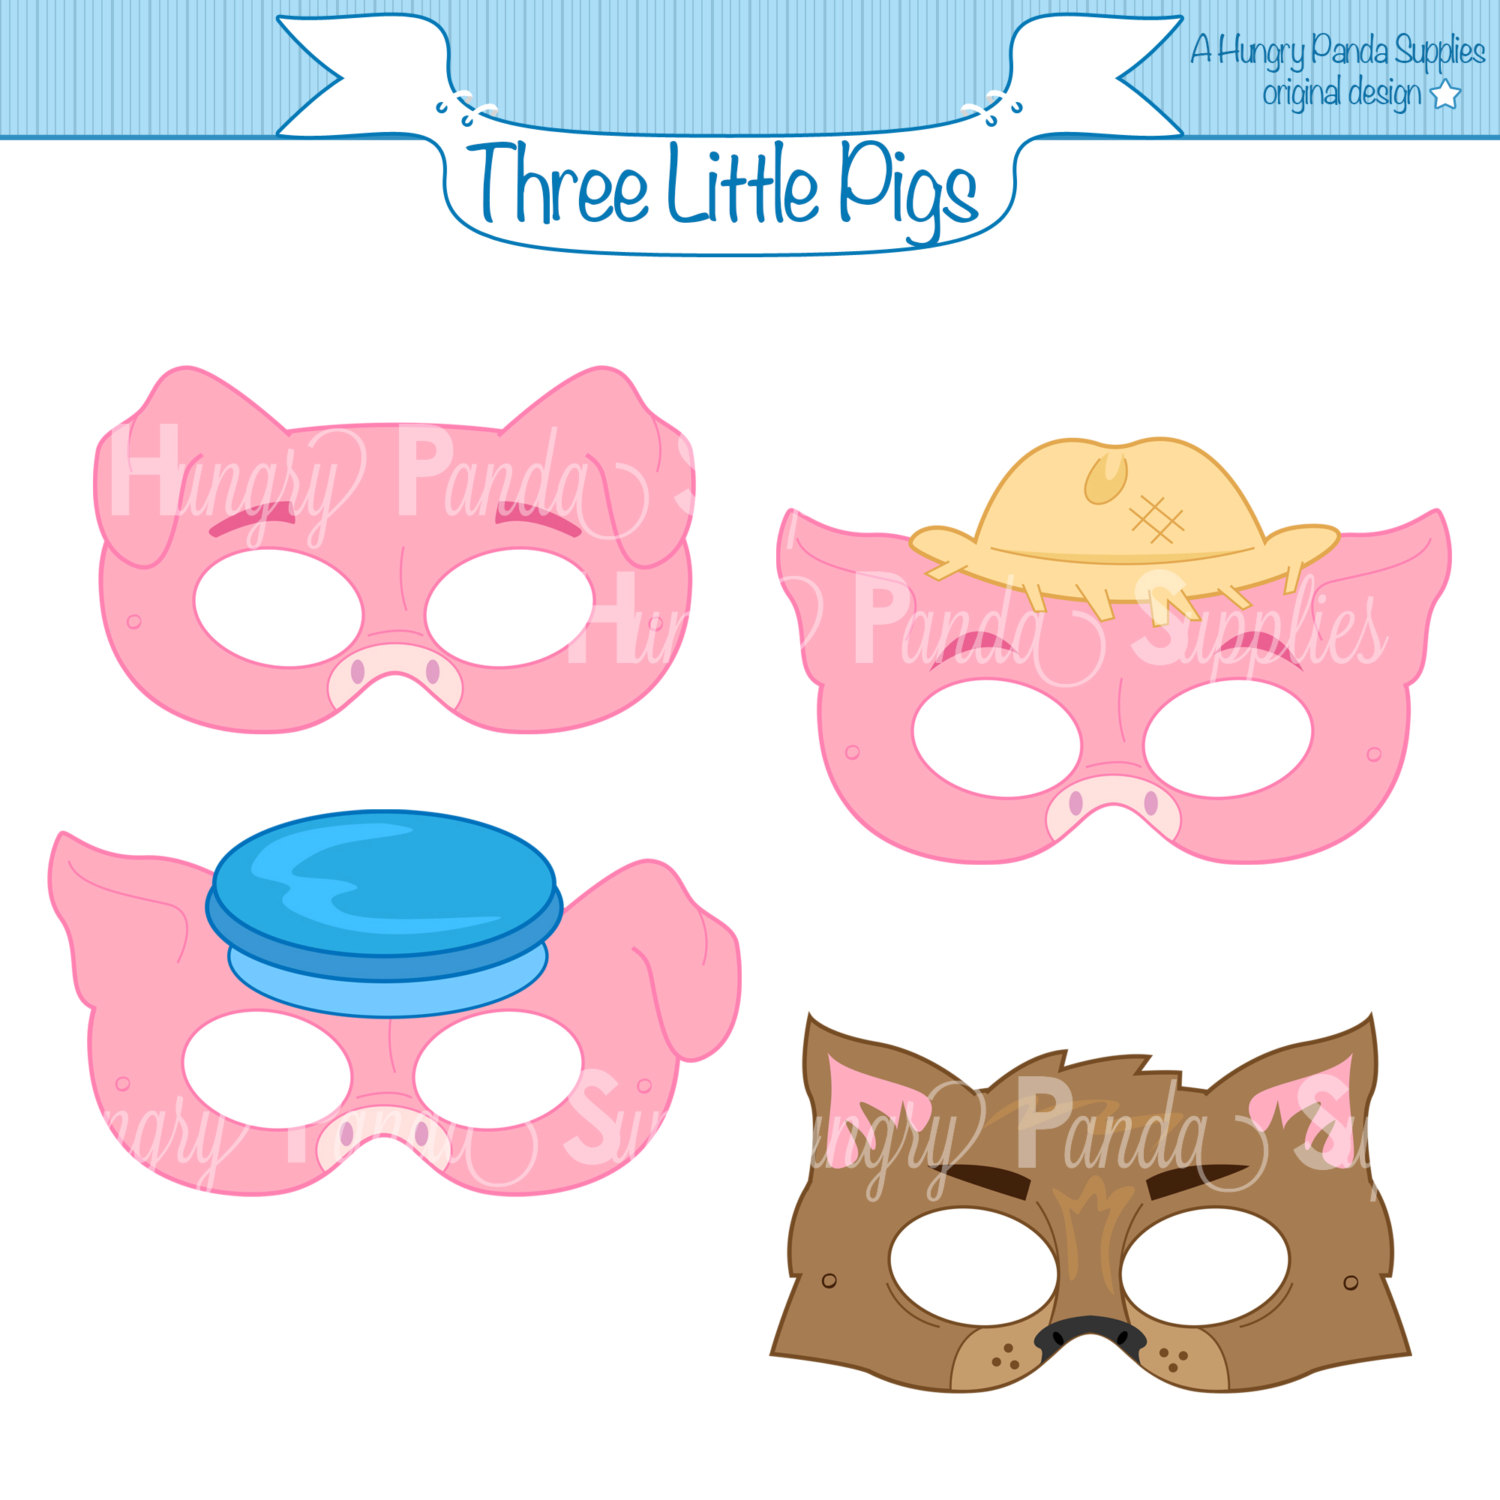 1500x1500 Three Little Pigs Printable Masks Three Little Pigs Big Bad